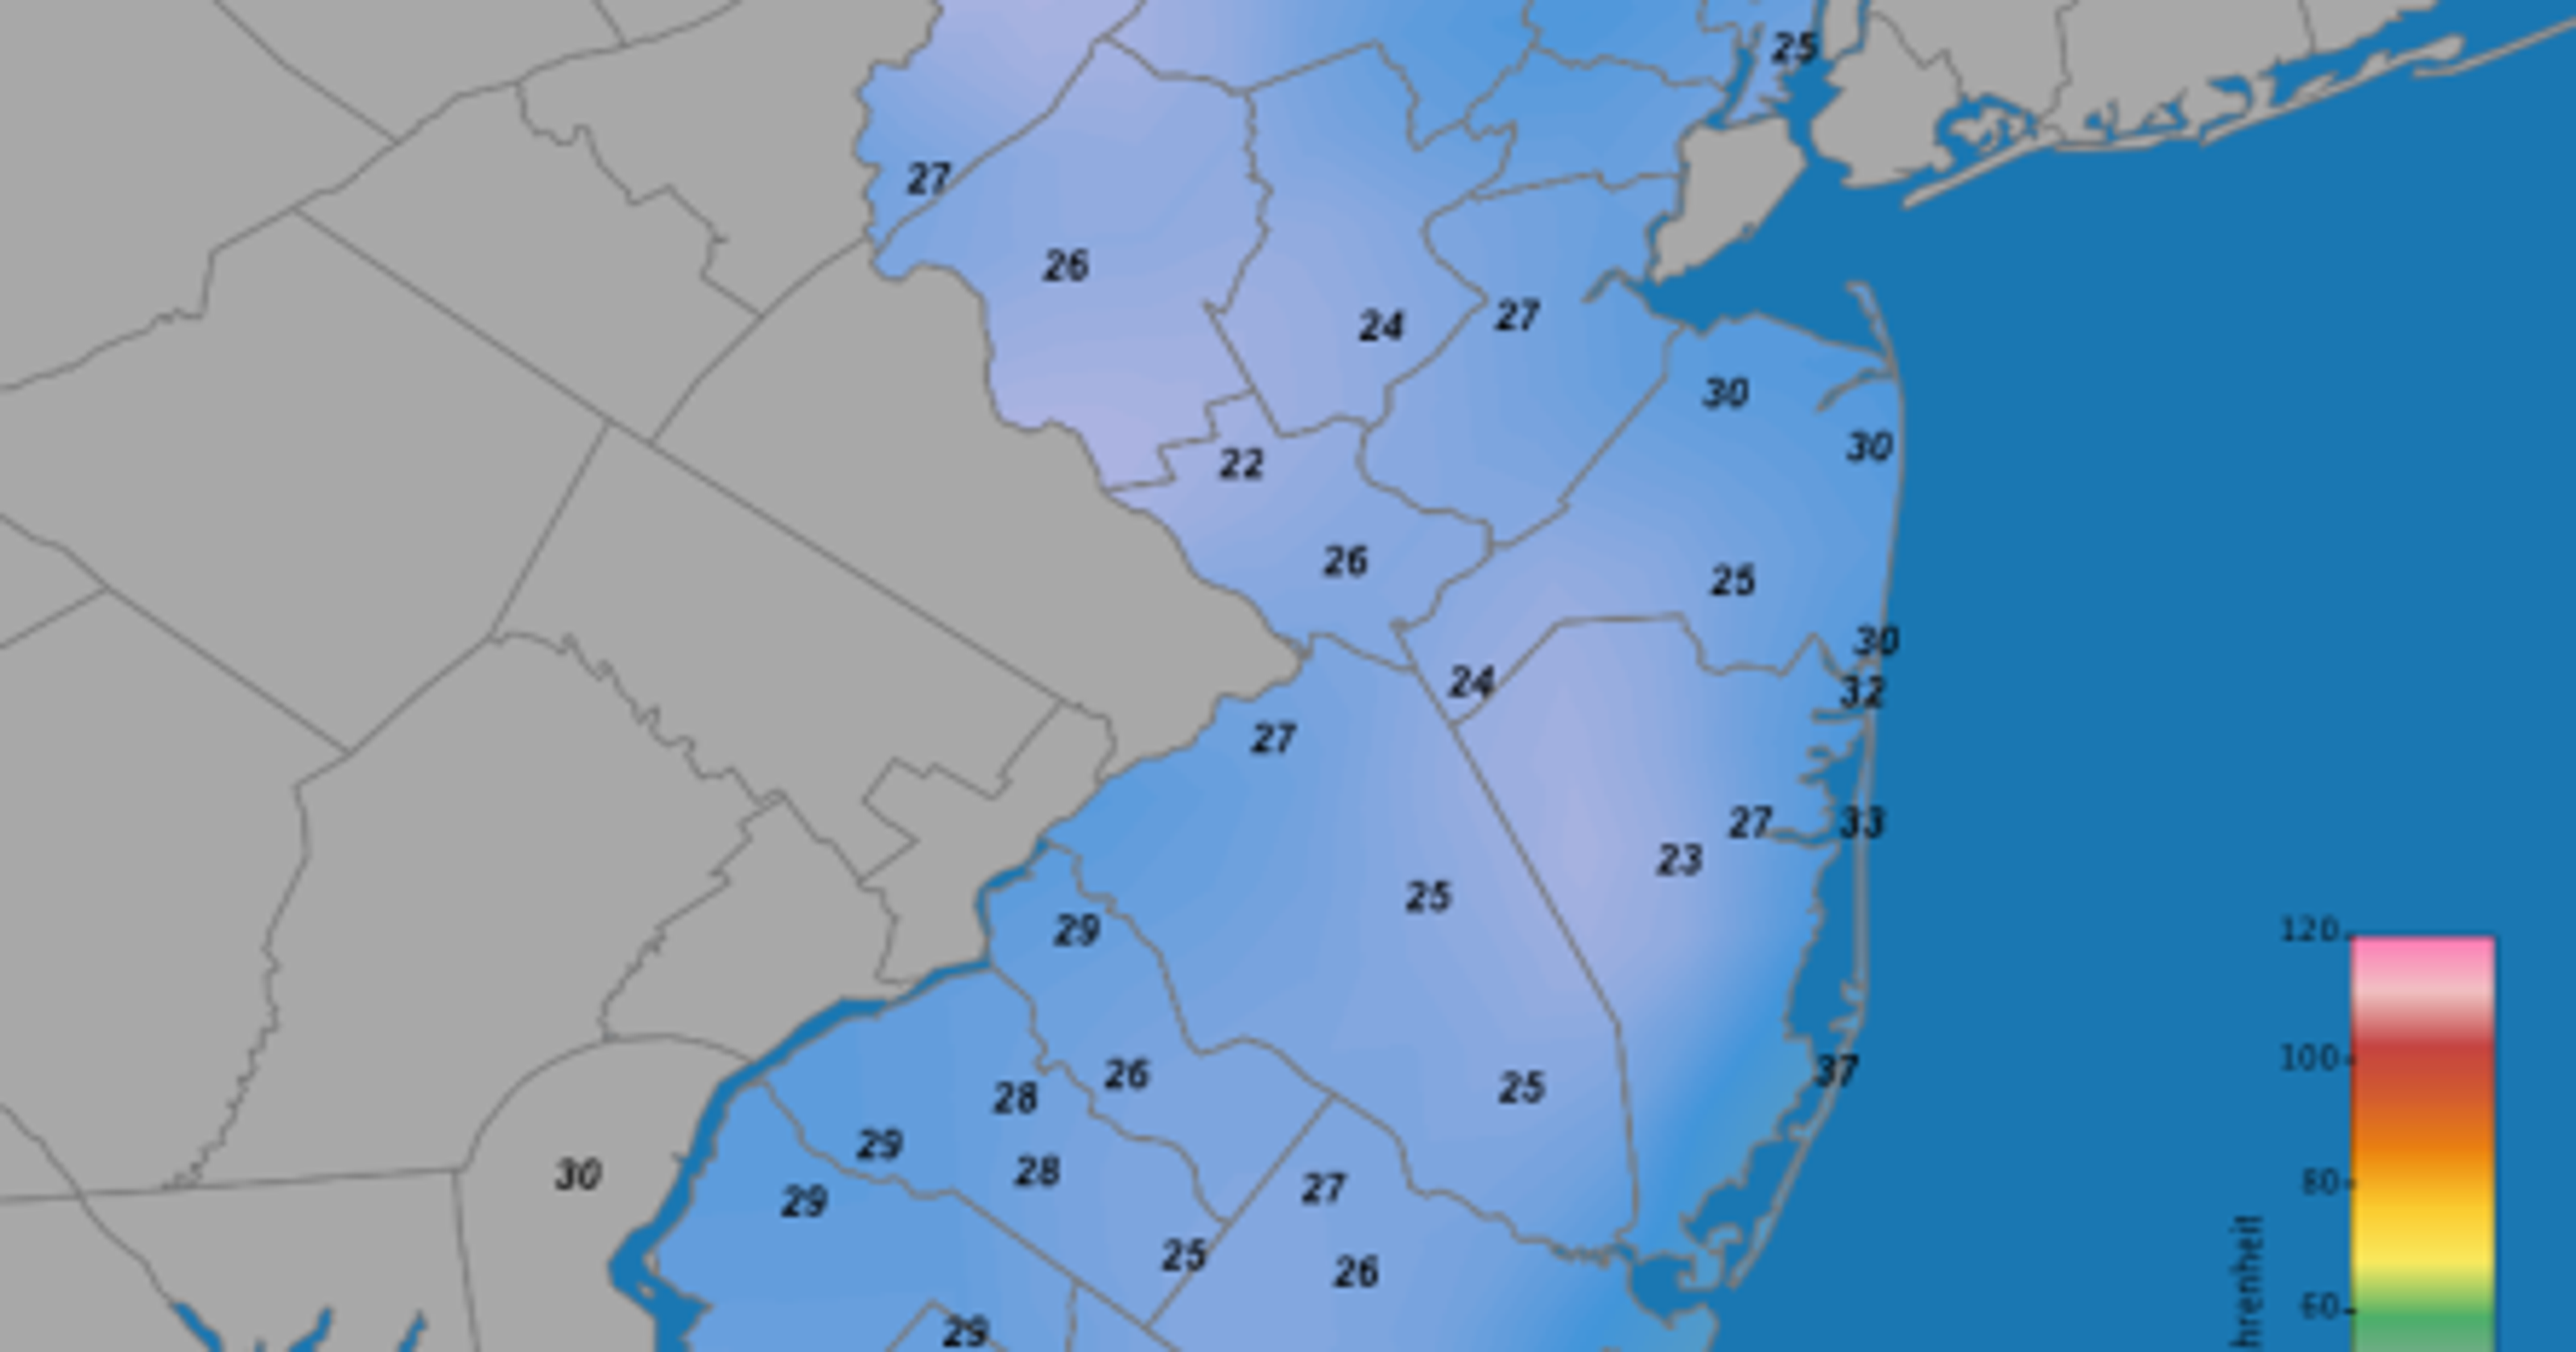 Record cold in NJ, stormy winter forecast